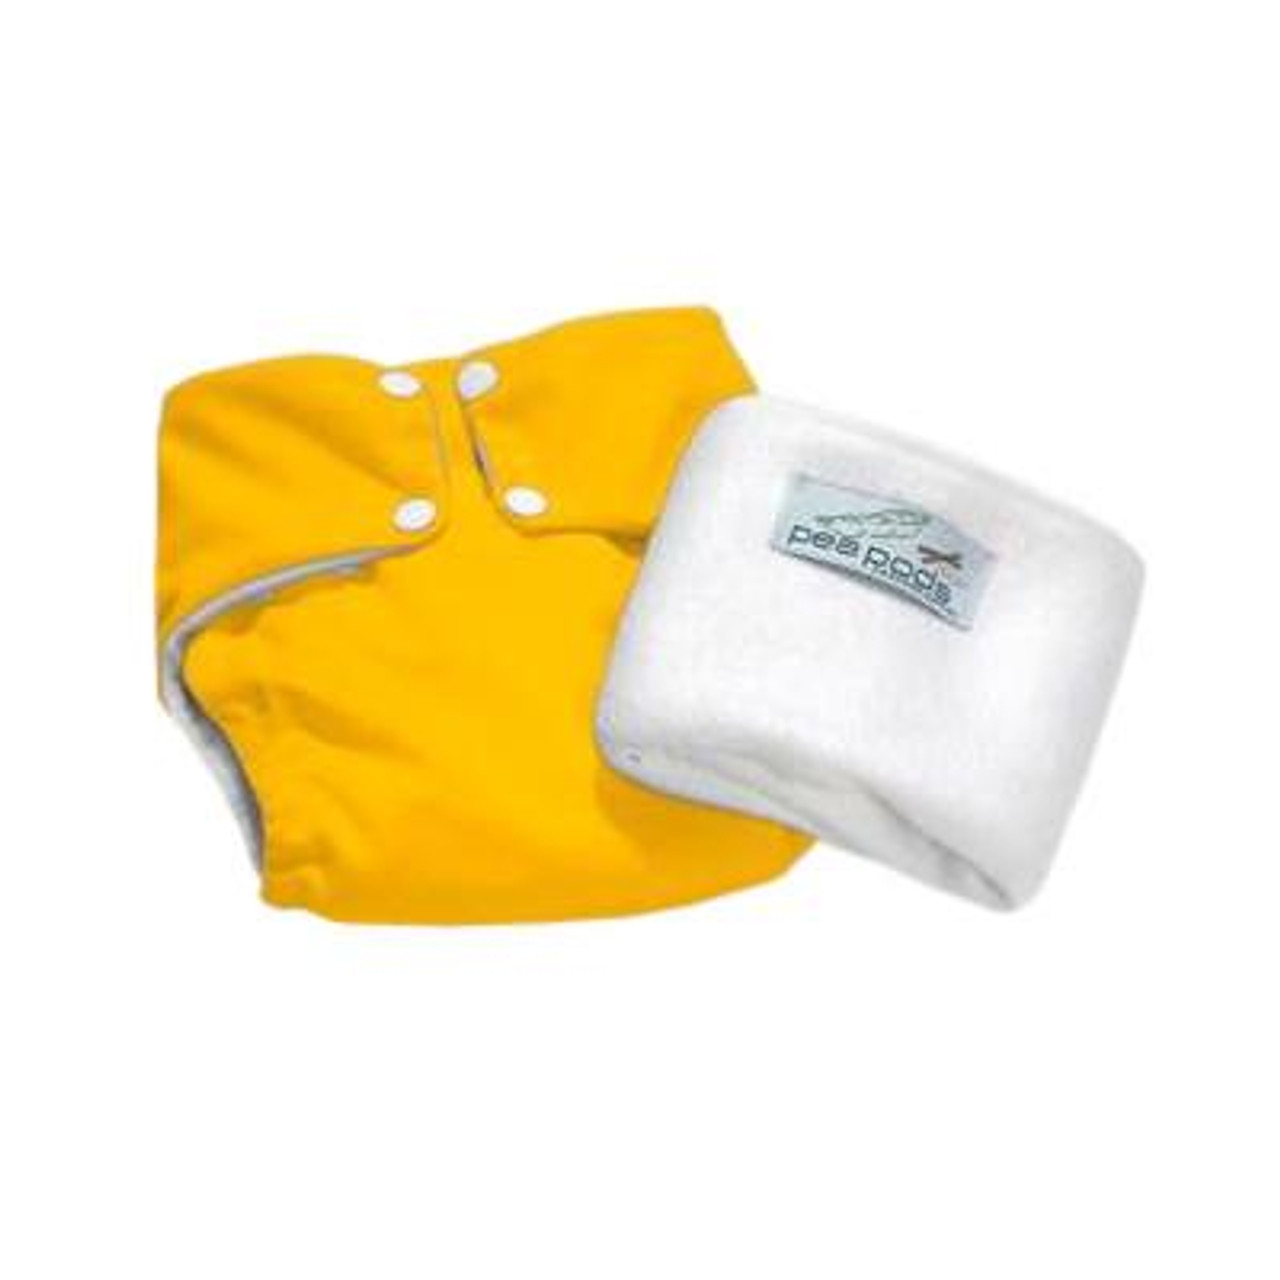 Pea Pods Modern Cloth Nappies One Size Fits Most at Baby Barn - Vibrant Yellow